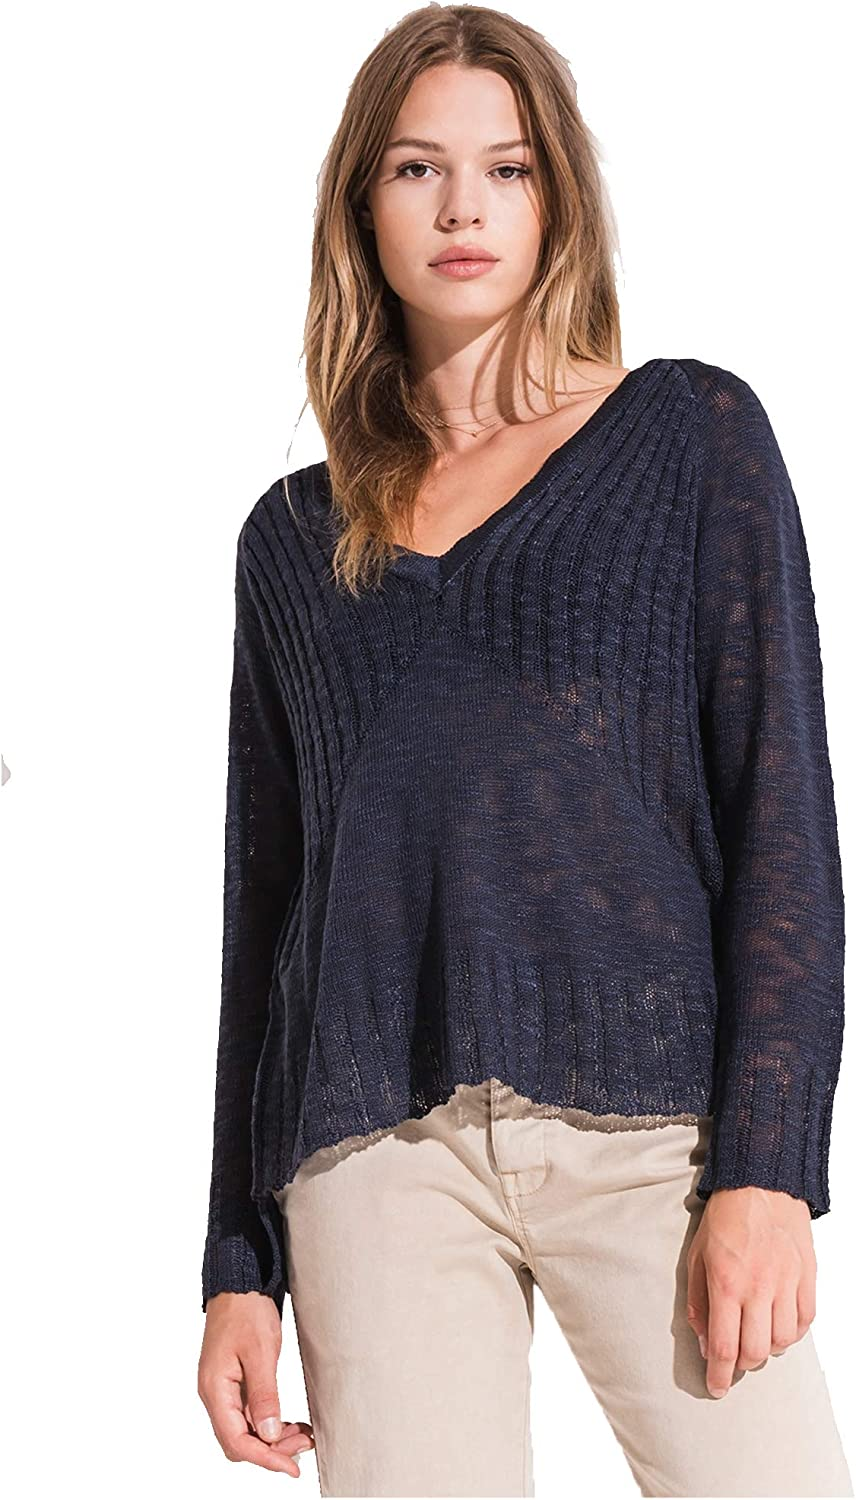 Rag Poets by Z Supply Women's Acadia Textured Knit Sweater